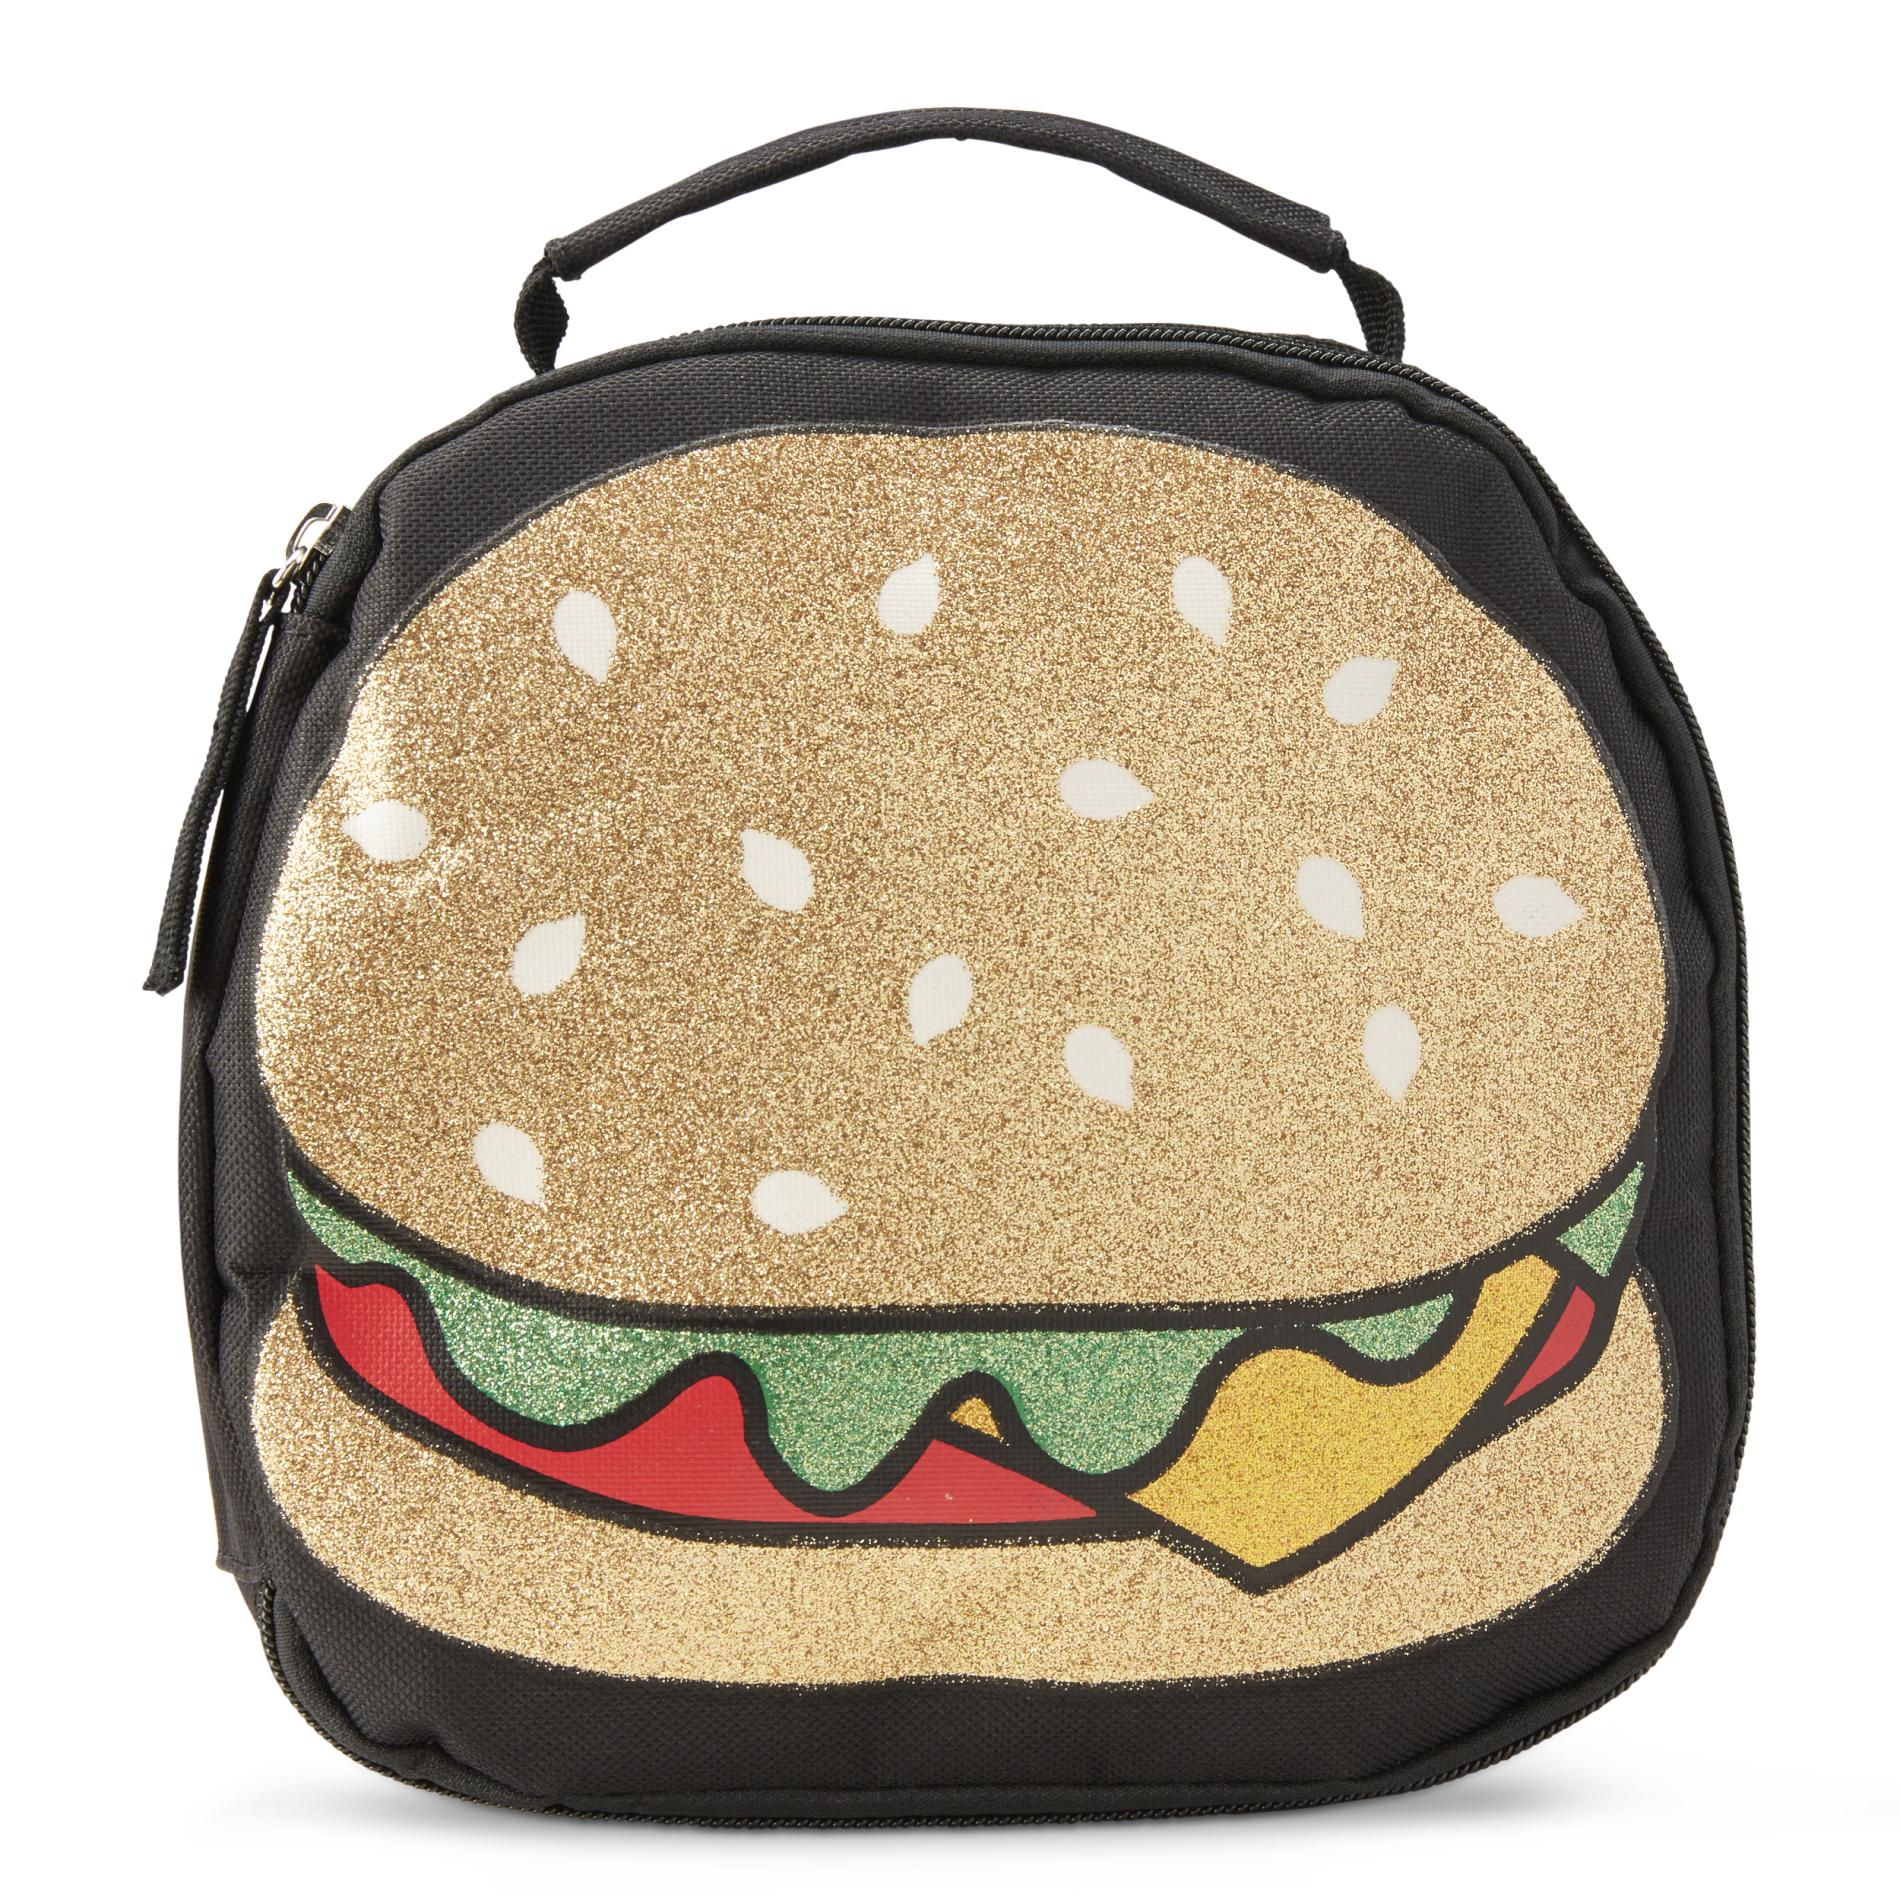 Image of CAM CONSUMER PRODUCTS, INC Girls' Lunch Bag - Cheeseburger